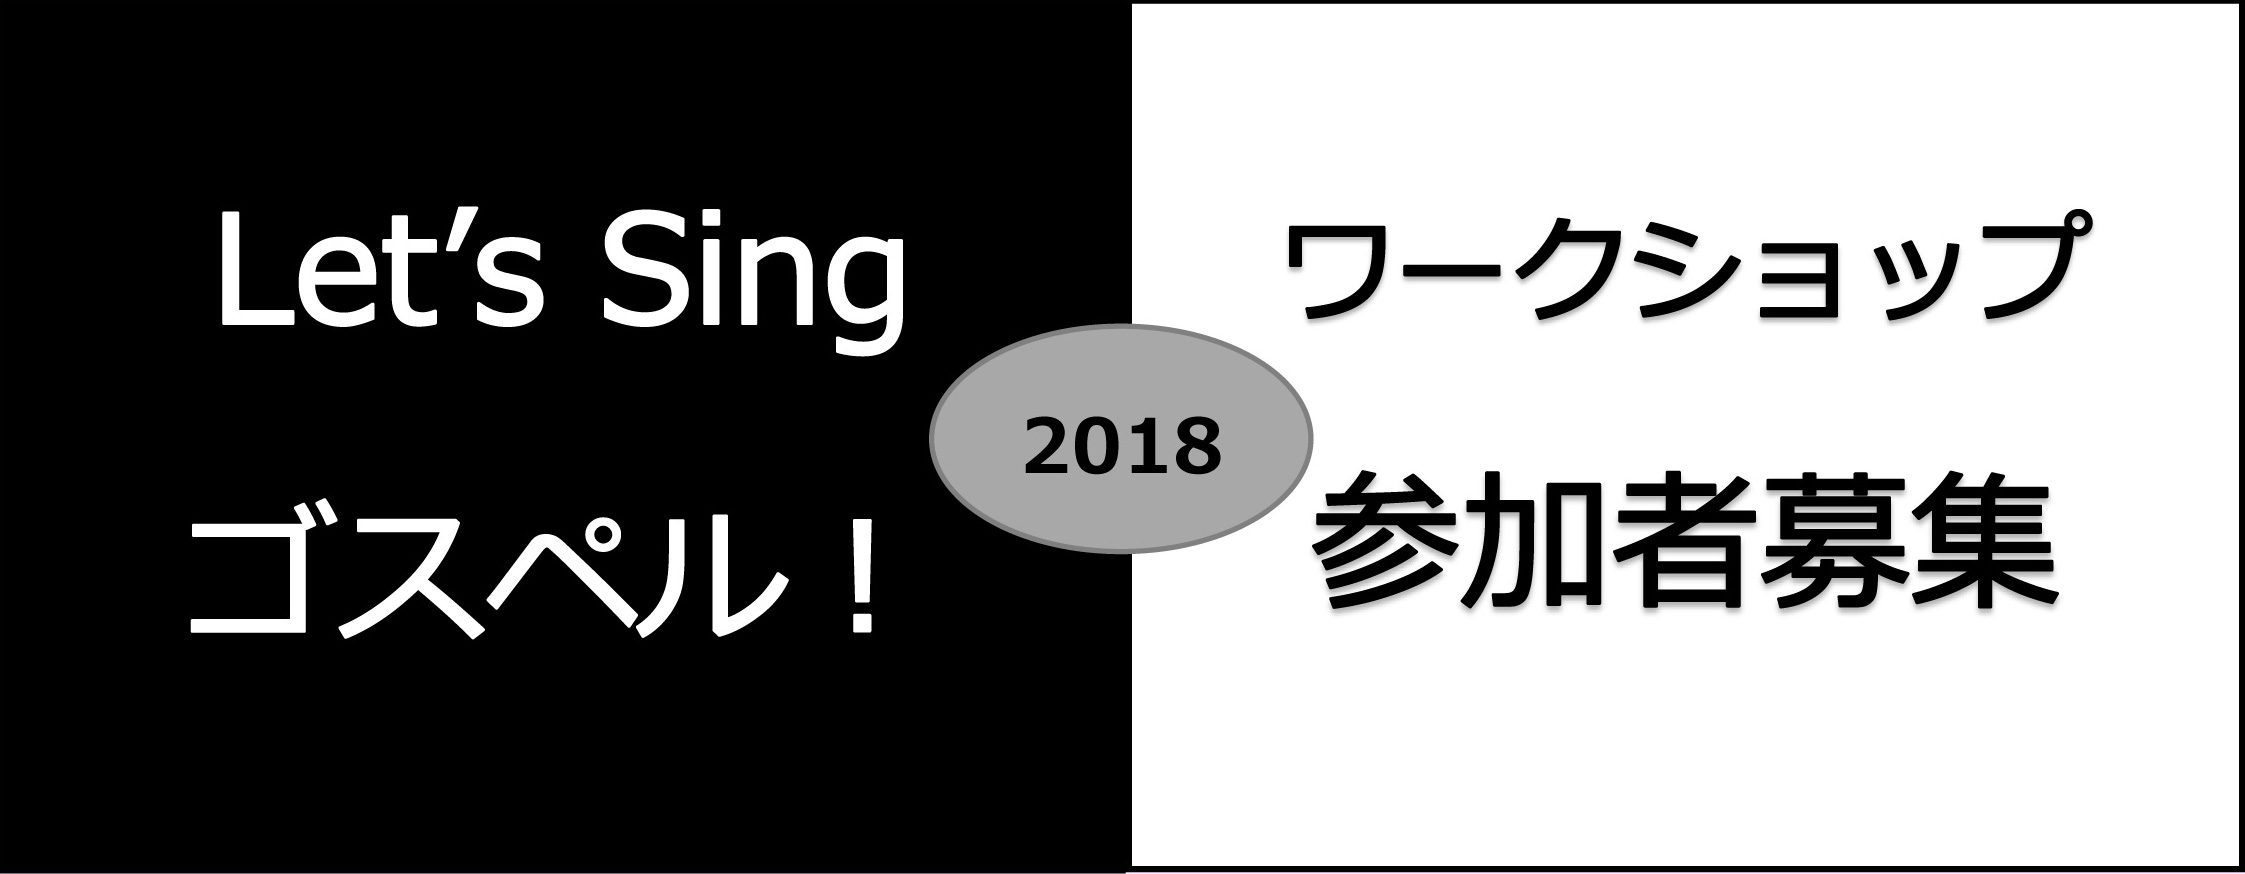 『Let's Sing ゴスペル!2018』ワークショップ参加者 募集!